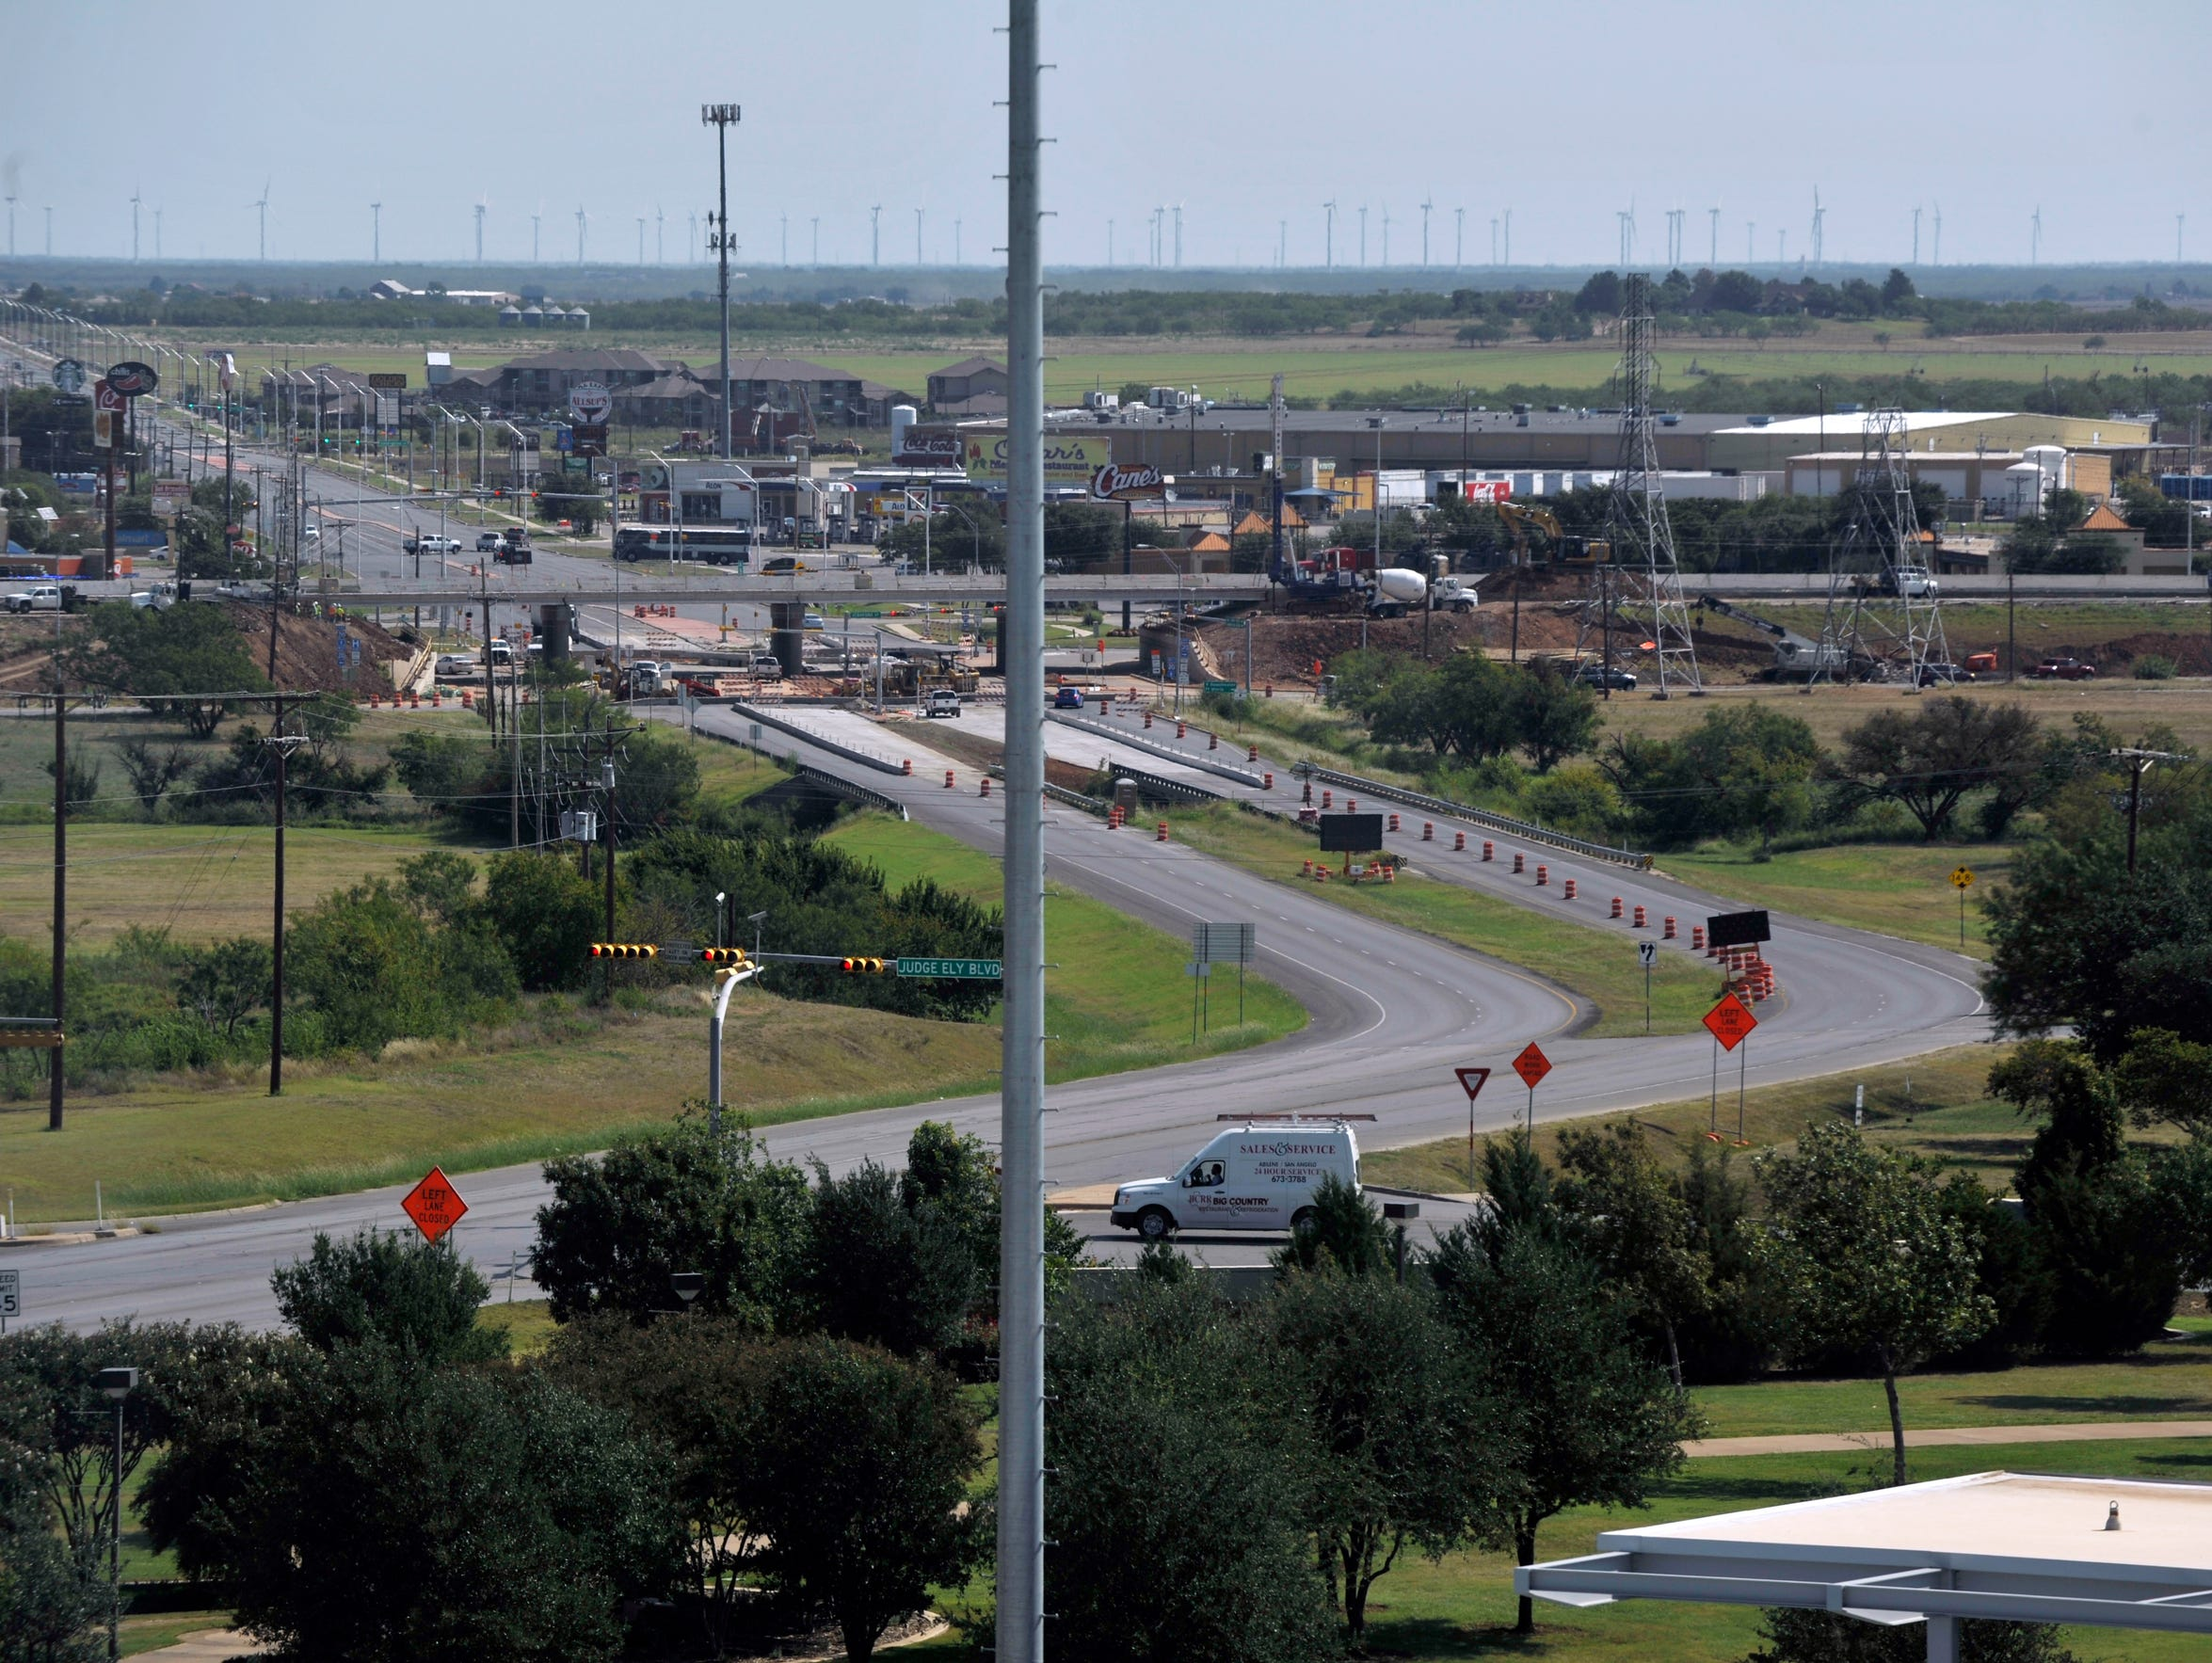 The view of the intersection of State Highway 351 toward Albany from the press box at Chuck Sitton Tower at Abilene Christian University's Wildcat Stadium on Sept. 7.